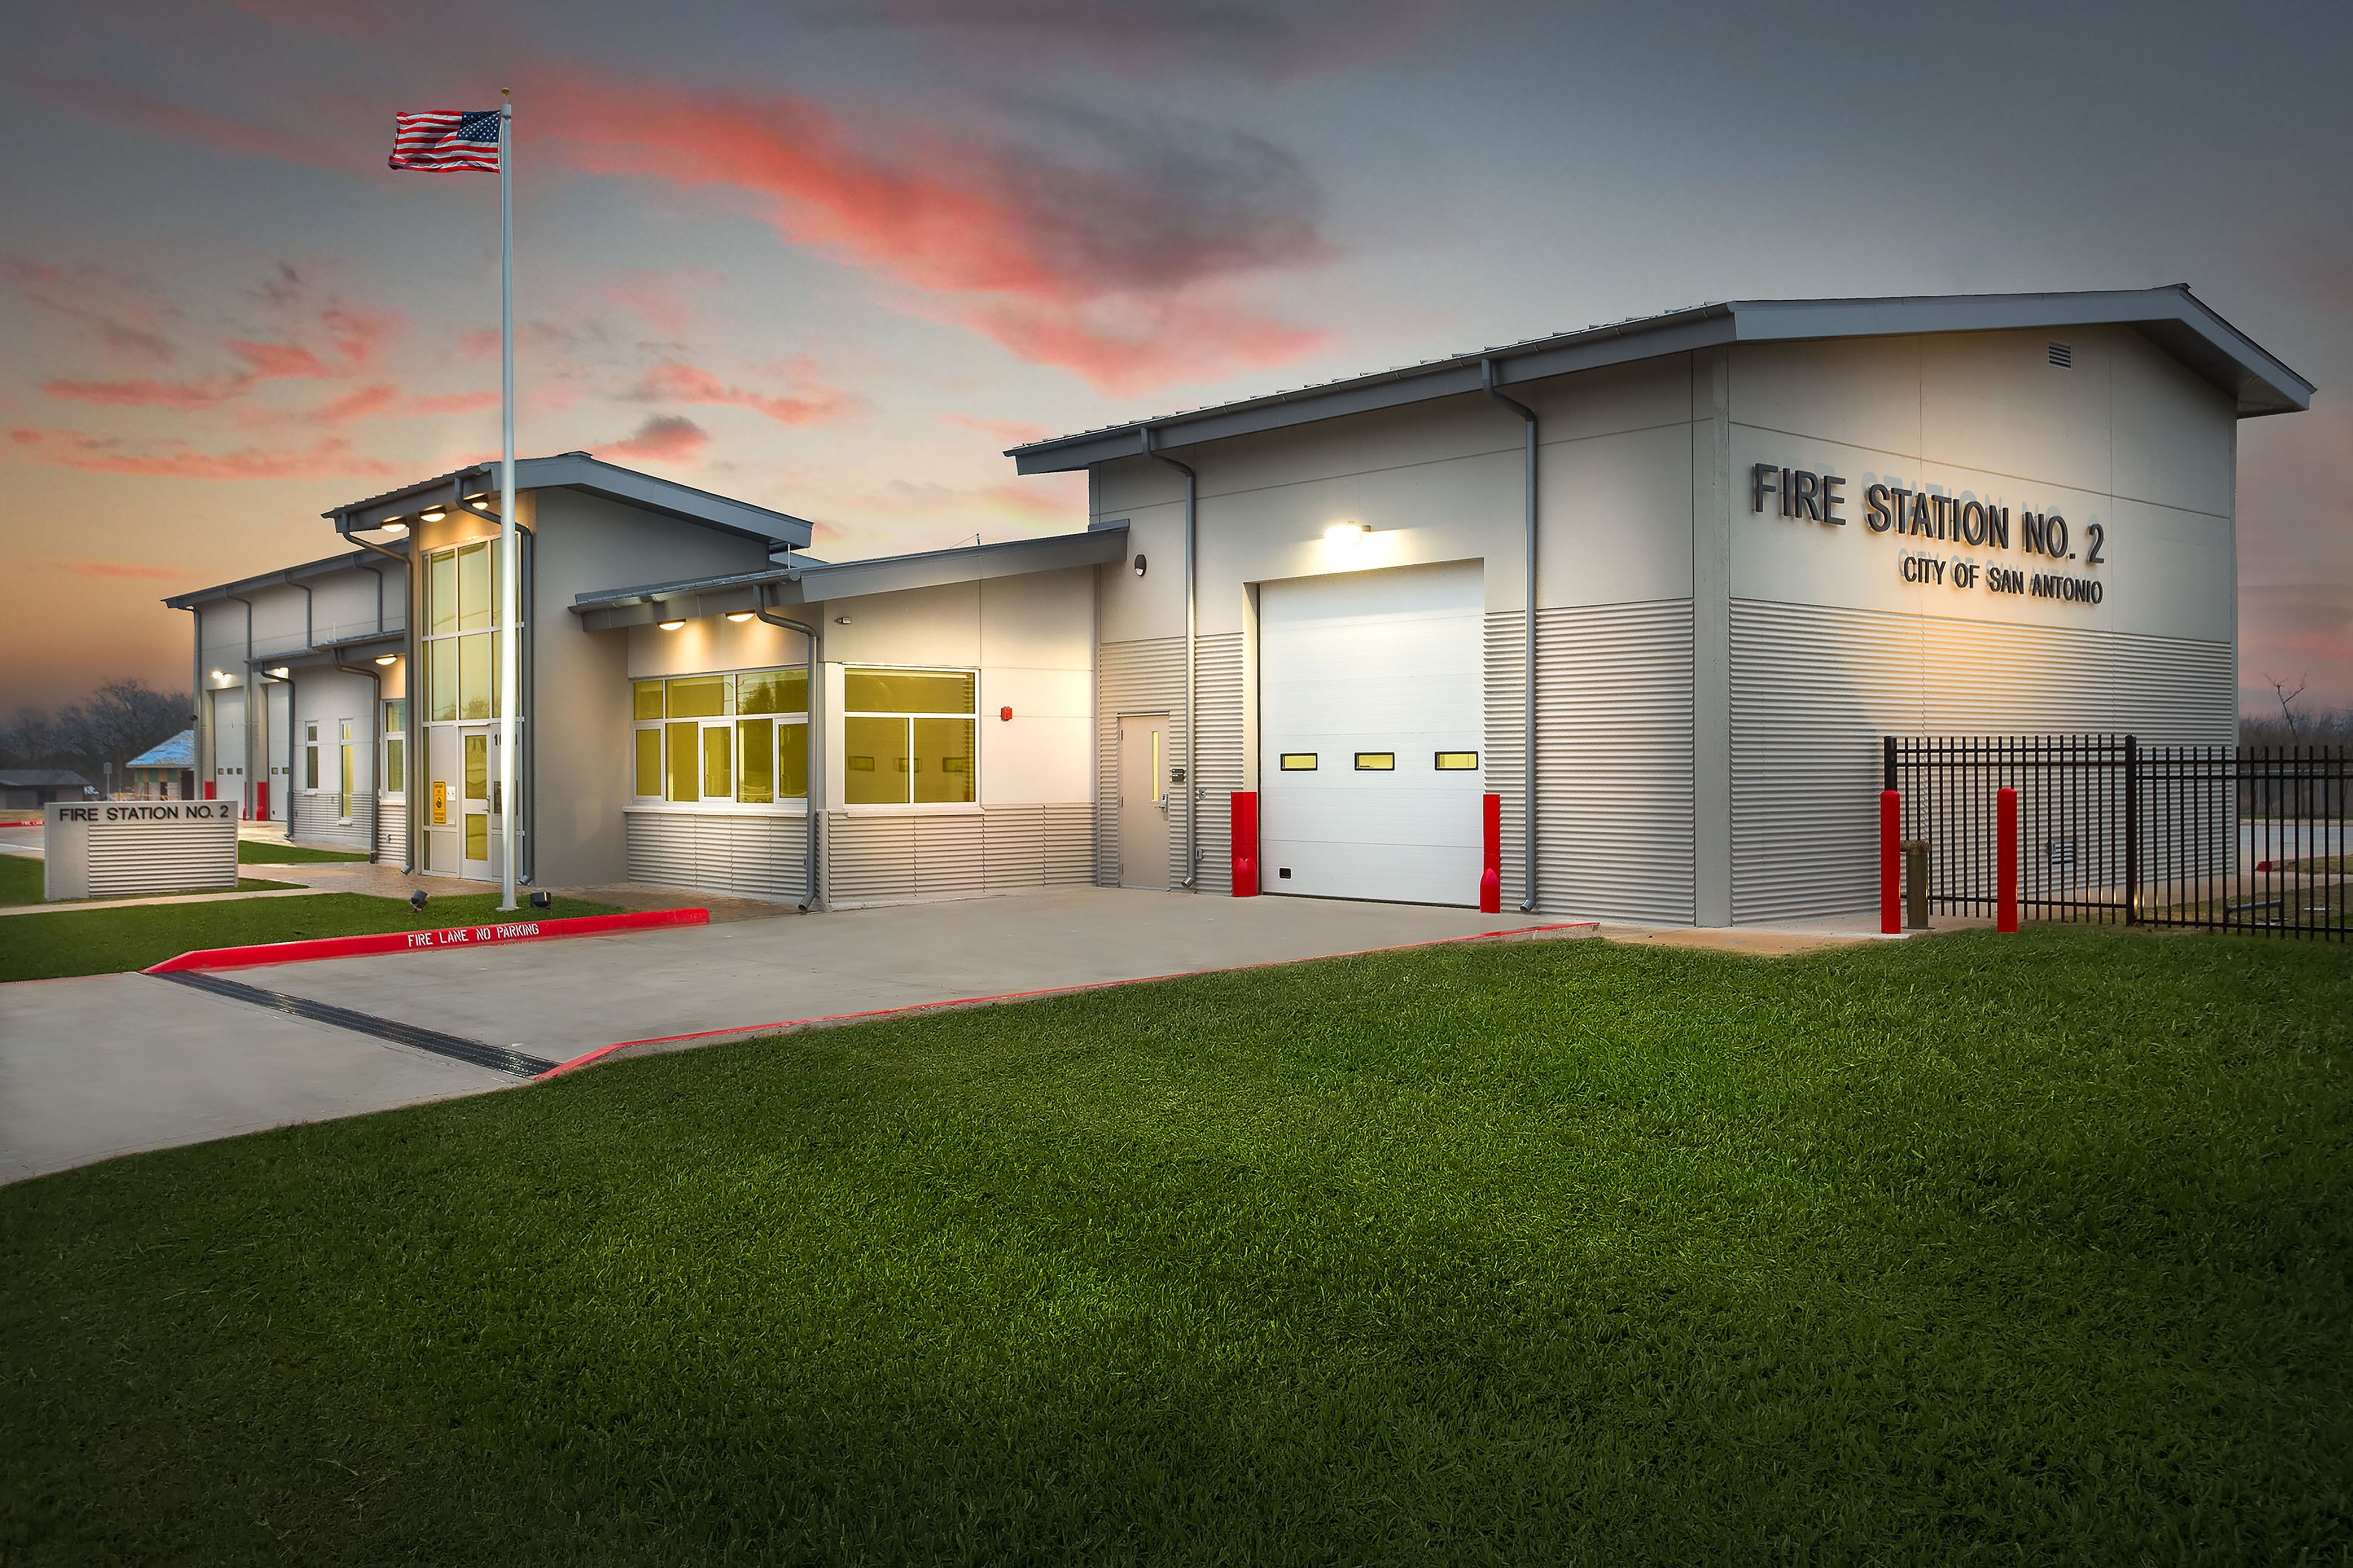 COSA - FIRE STATION 2